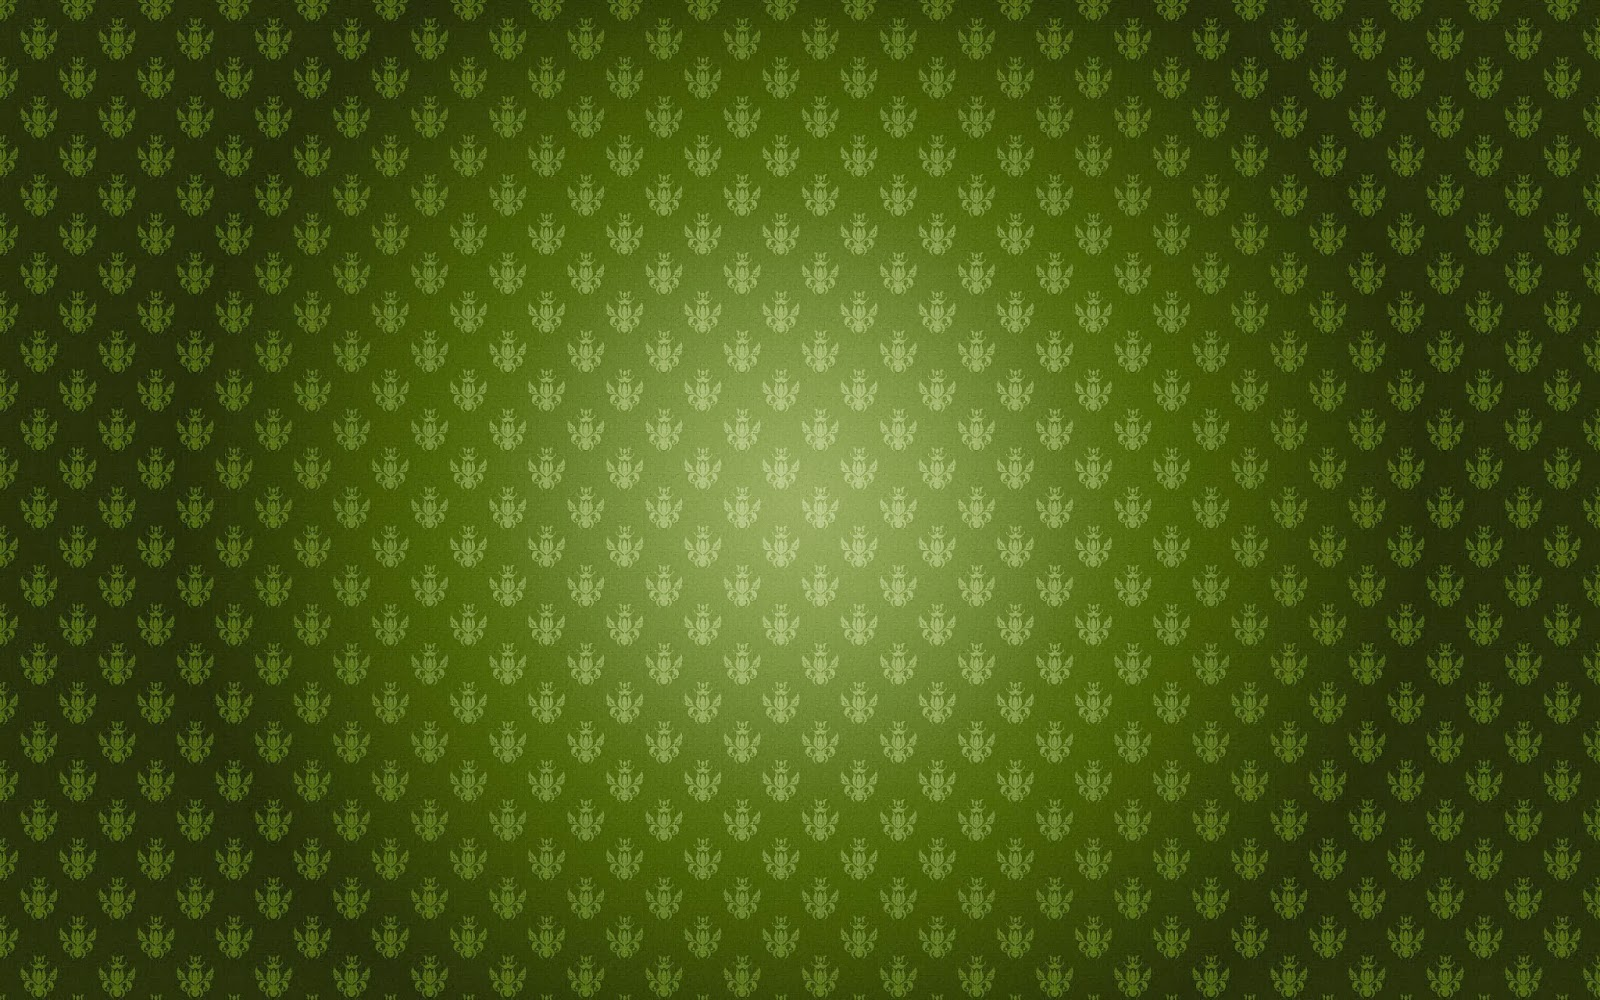 Dark textured background design patterns website images for Green design